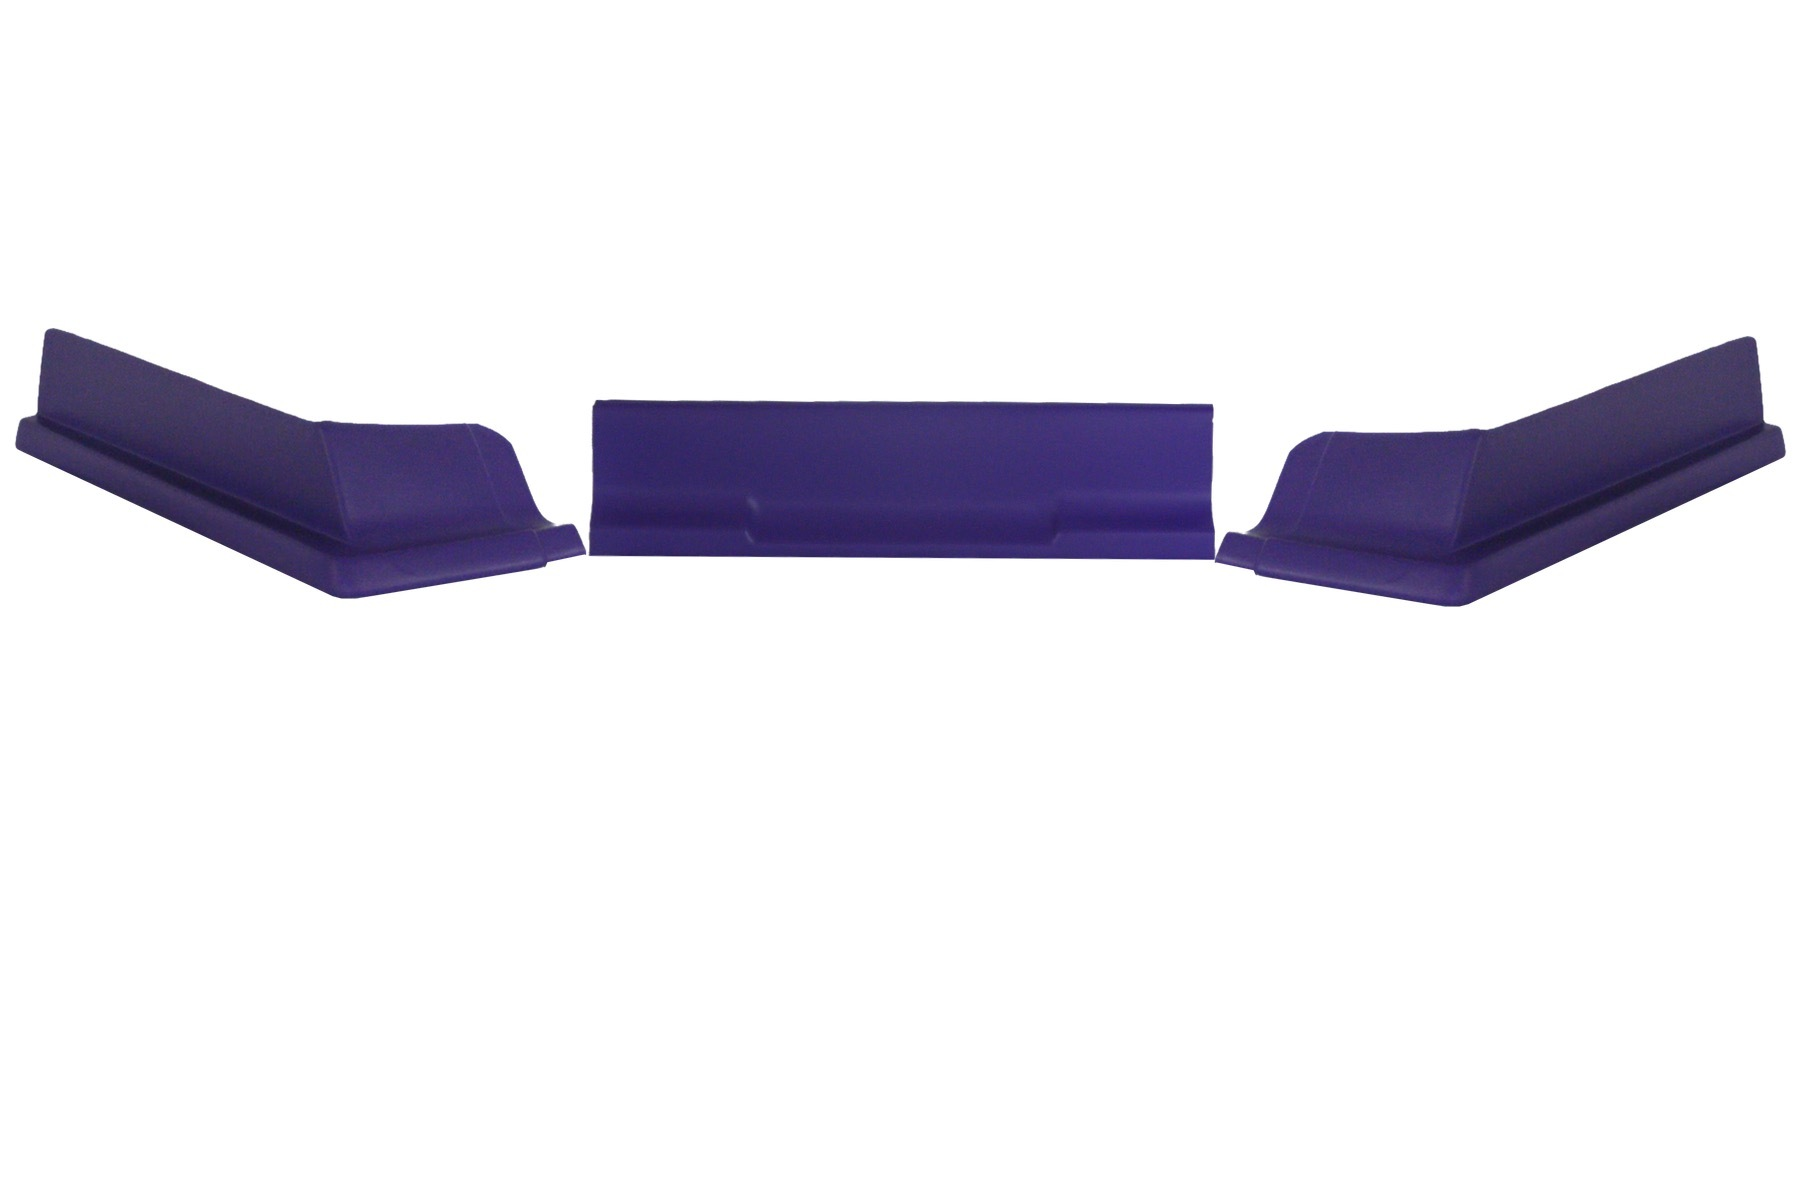 Dominator Racing Products 409-PU Air Valance, 3 Piece, Molded Plastic, Purple, Dirt Modified, Each